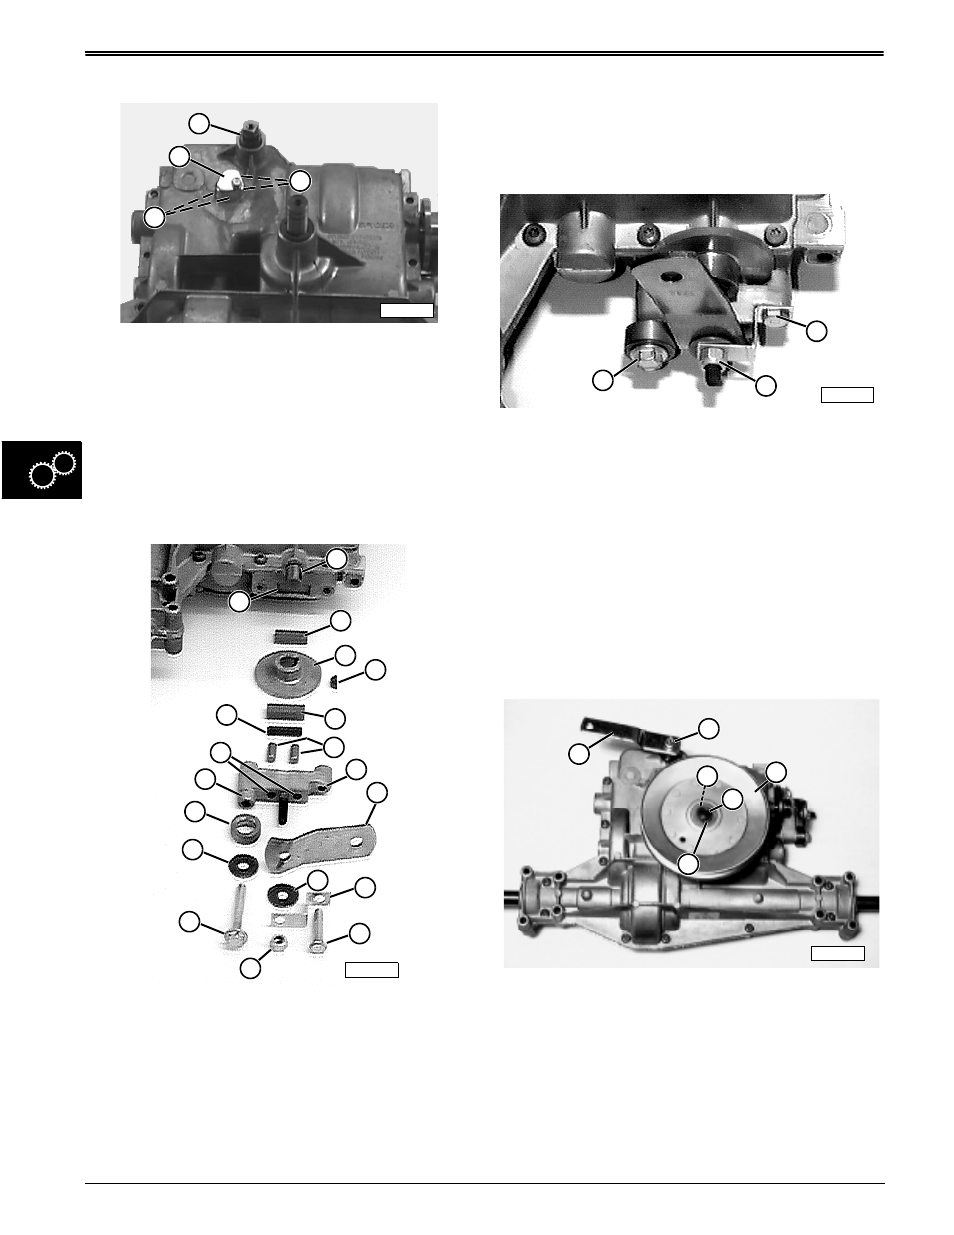 john deere 314 manual download